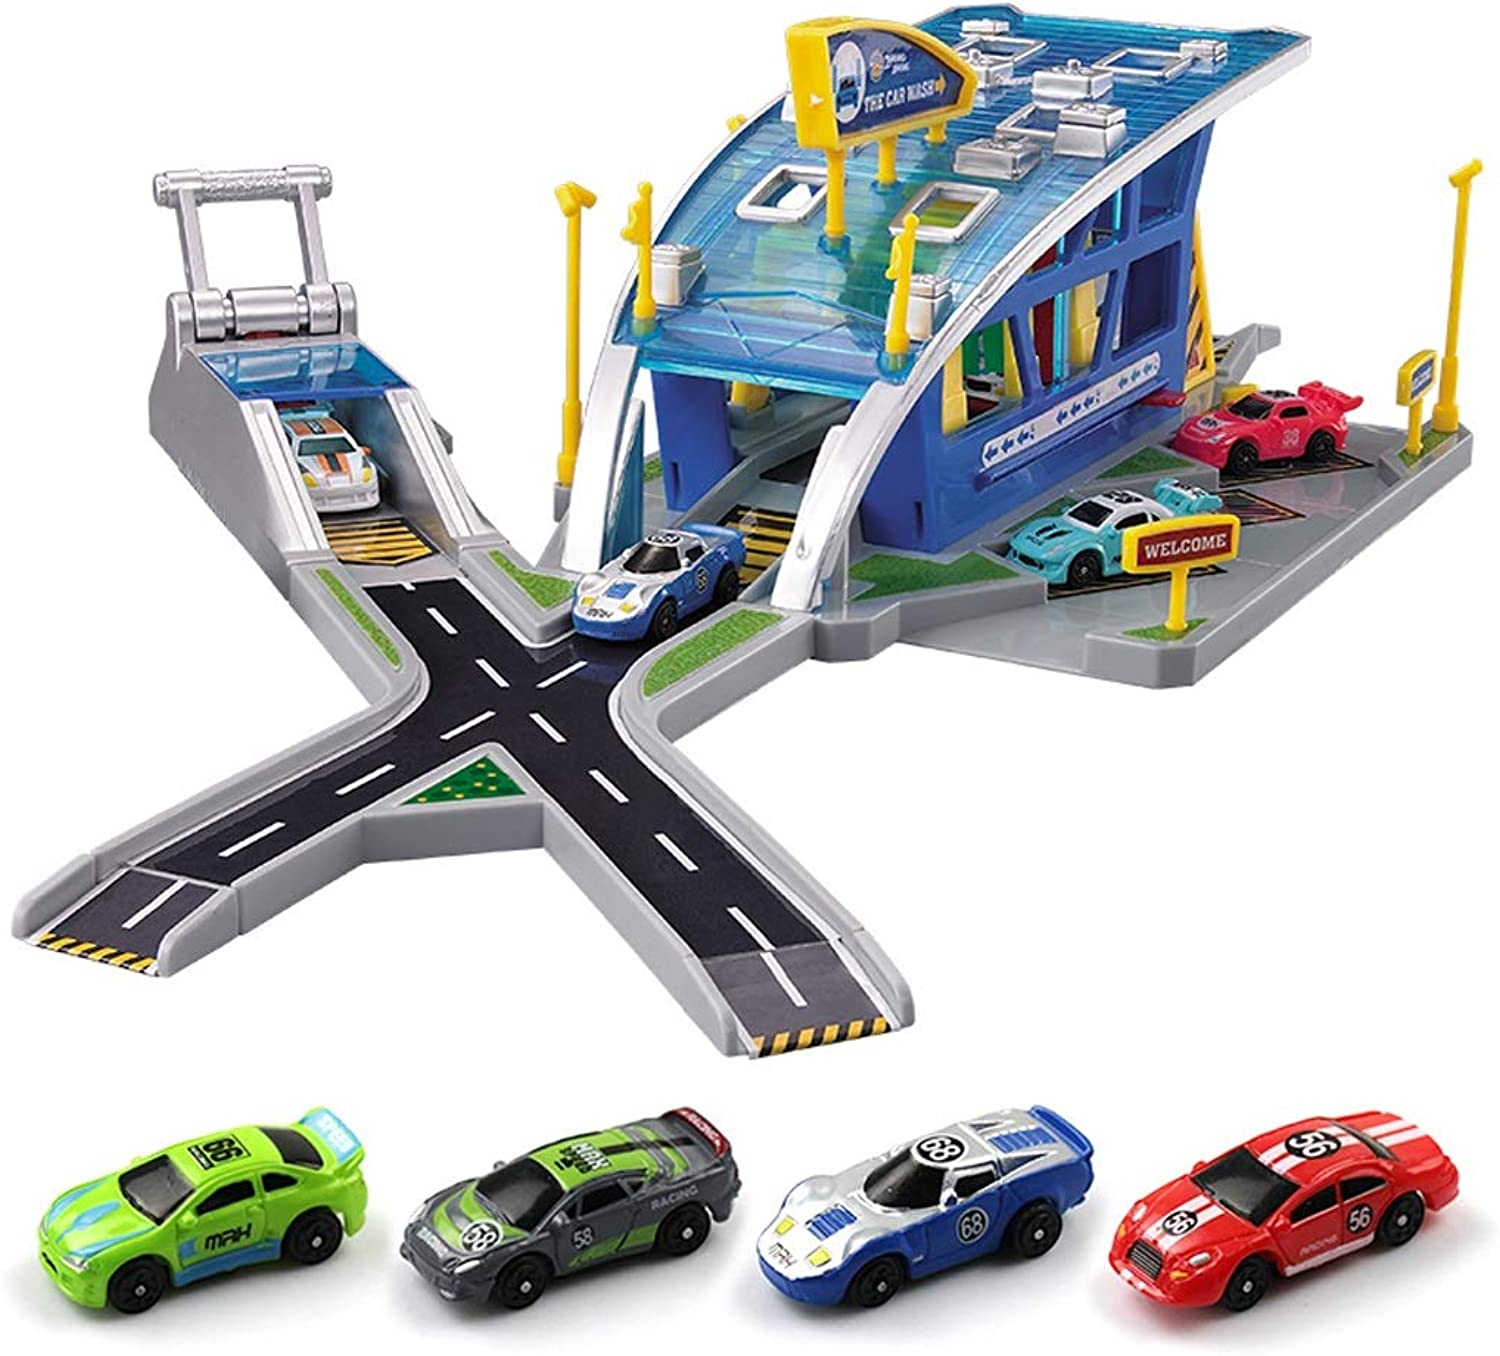 Racing Auto Repair Parking Toy Set, with 4 Cars Can Be Catapult, Car Toy Boy